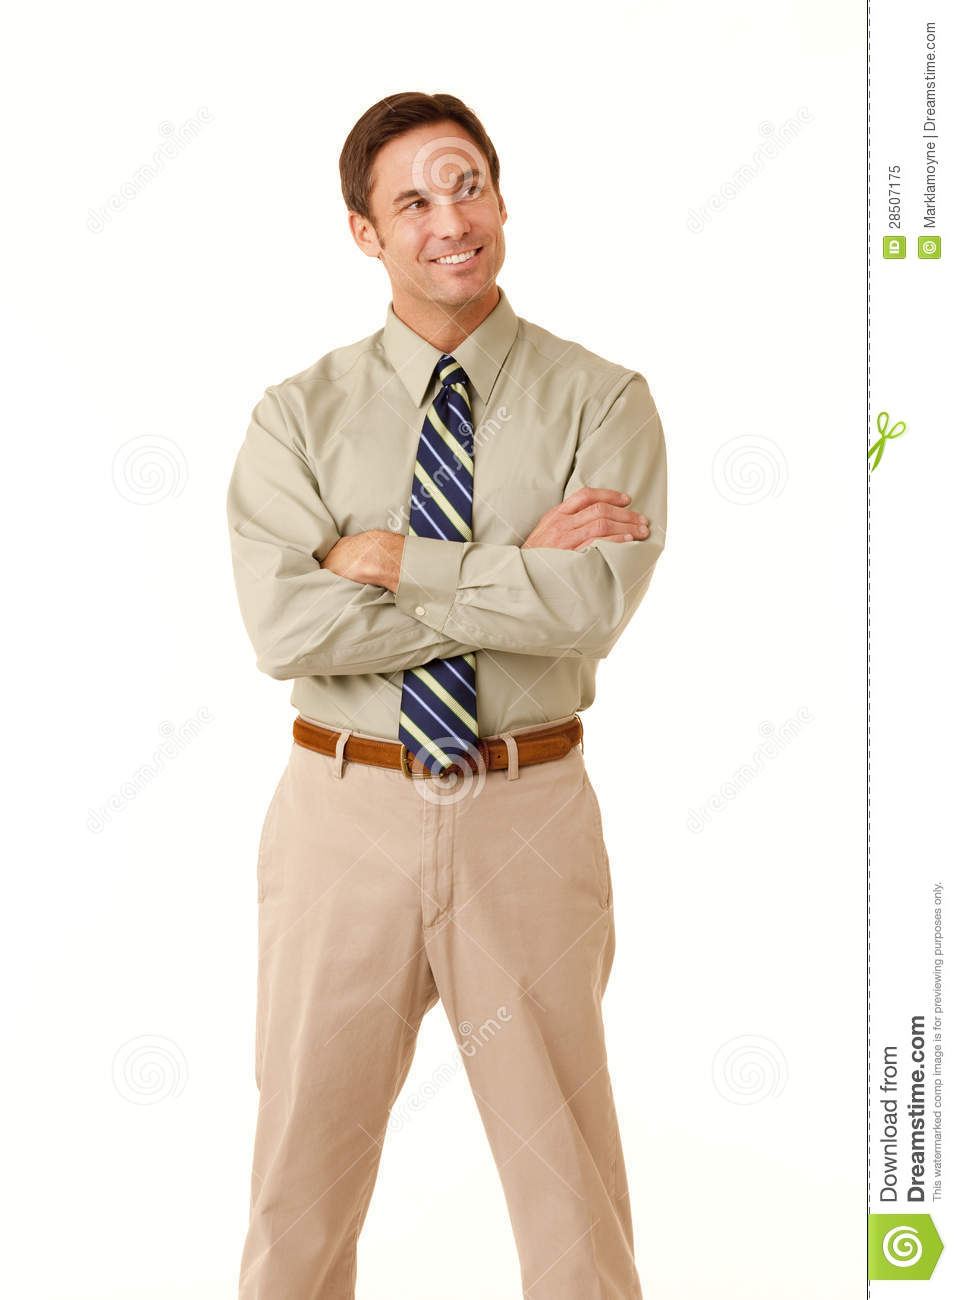 Businessman with arms crossed looking off